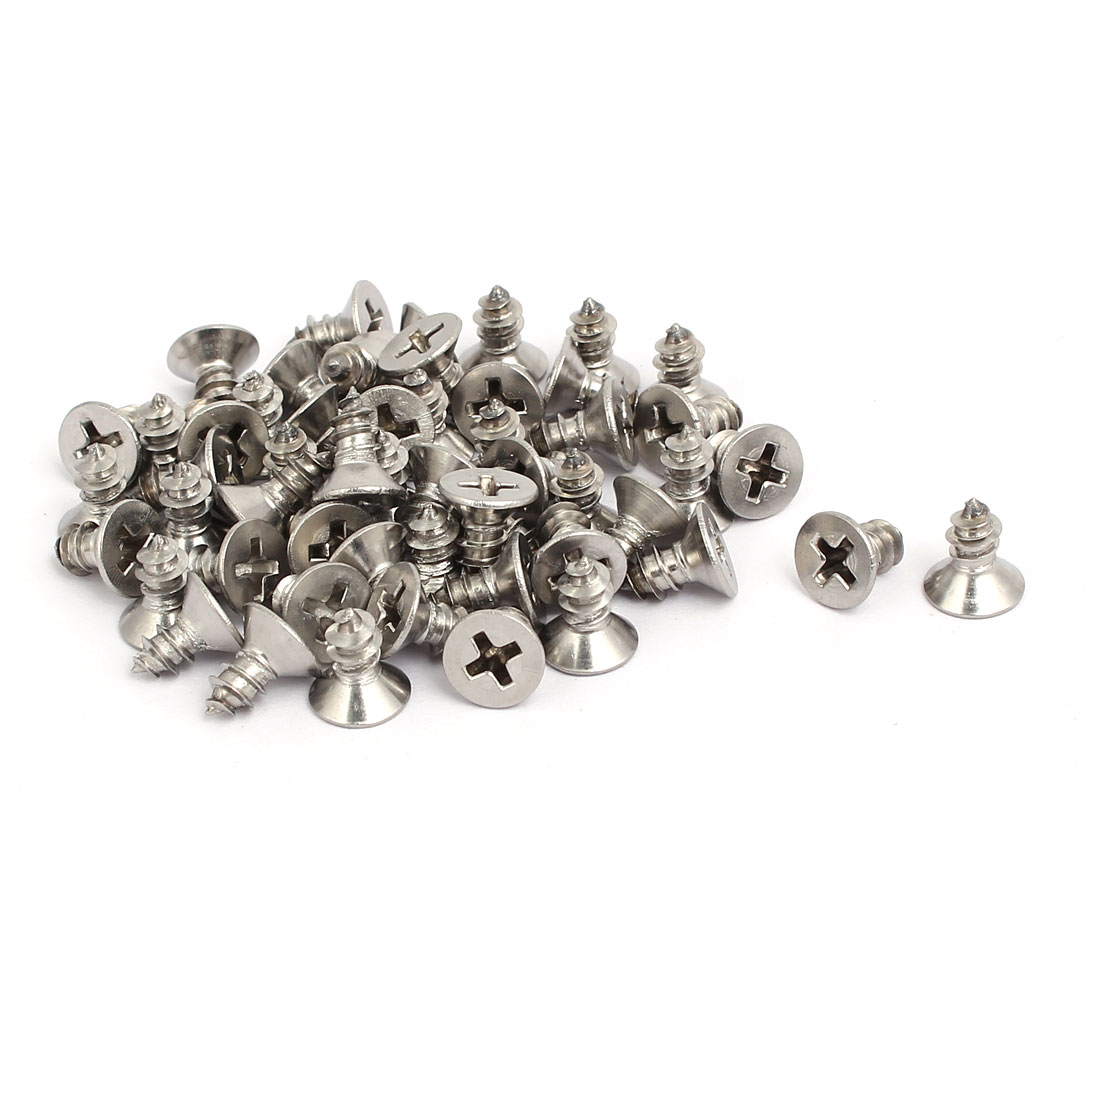 M5x10mm 304 Stainless Steel Phillips Drive Flat Head Self Tapping Screws 50pcs